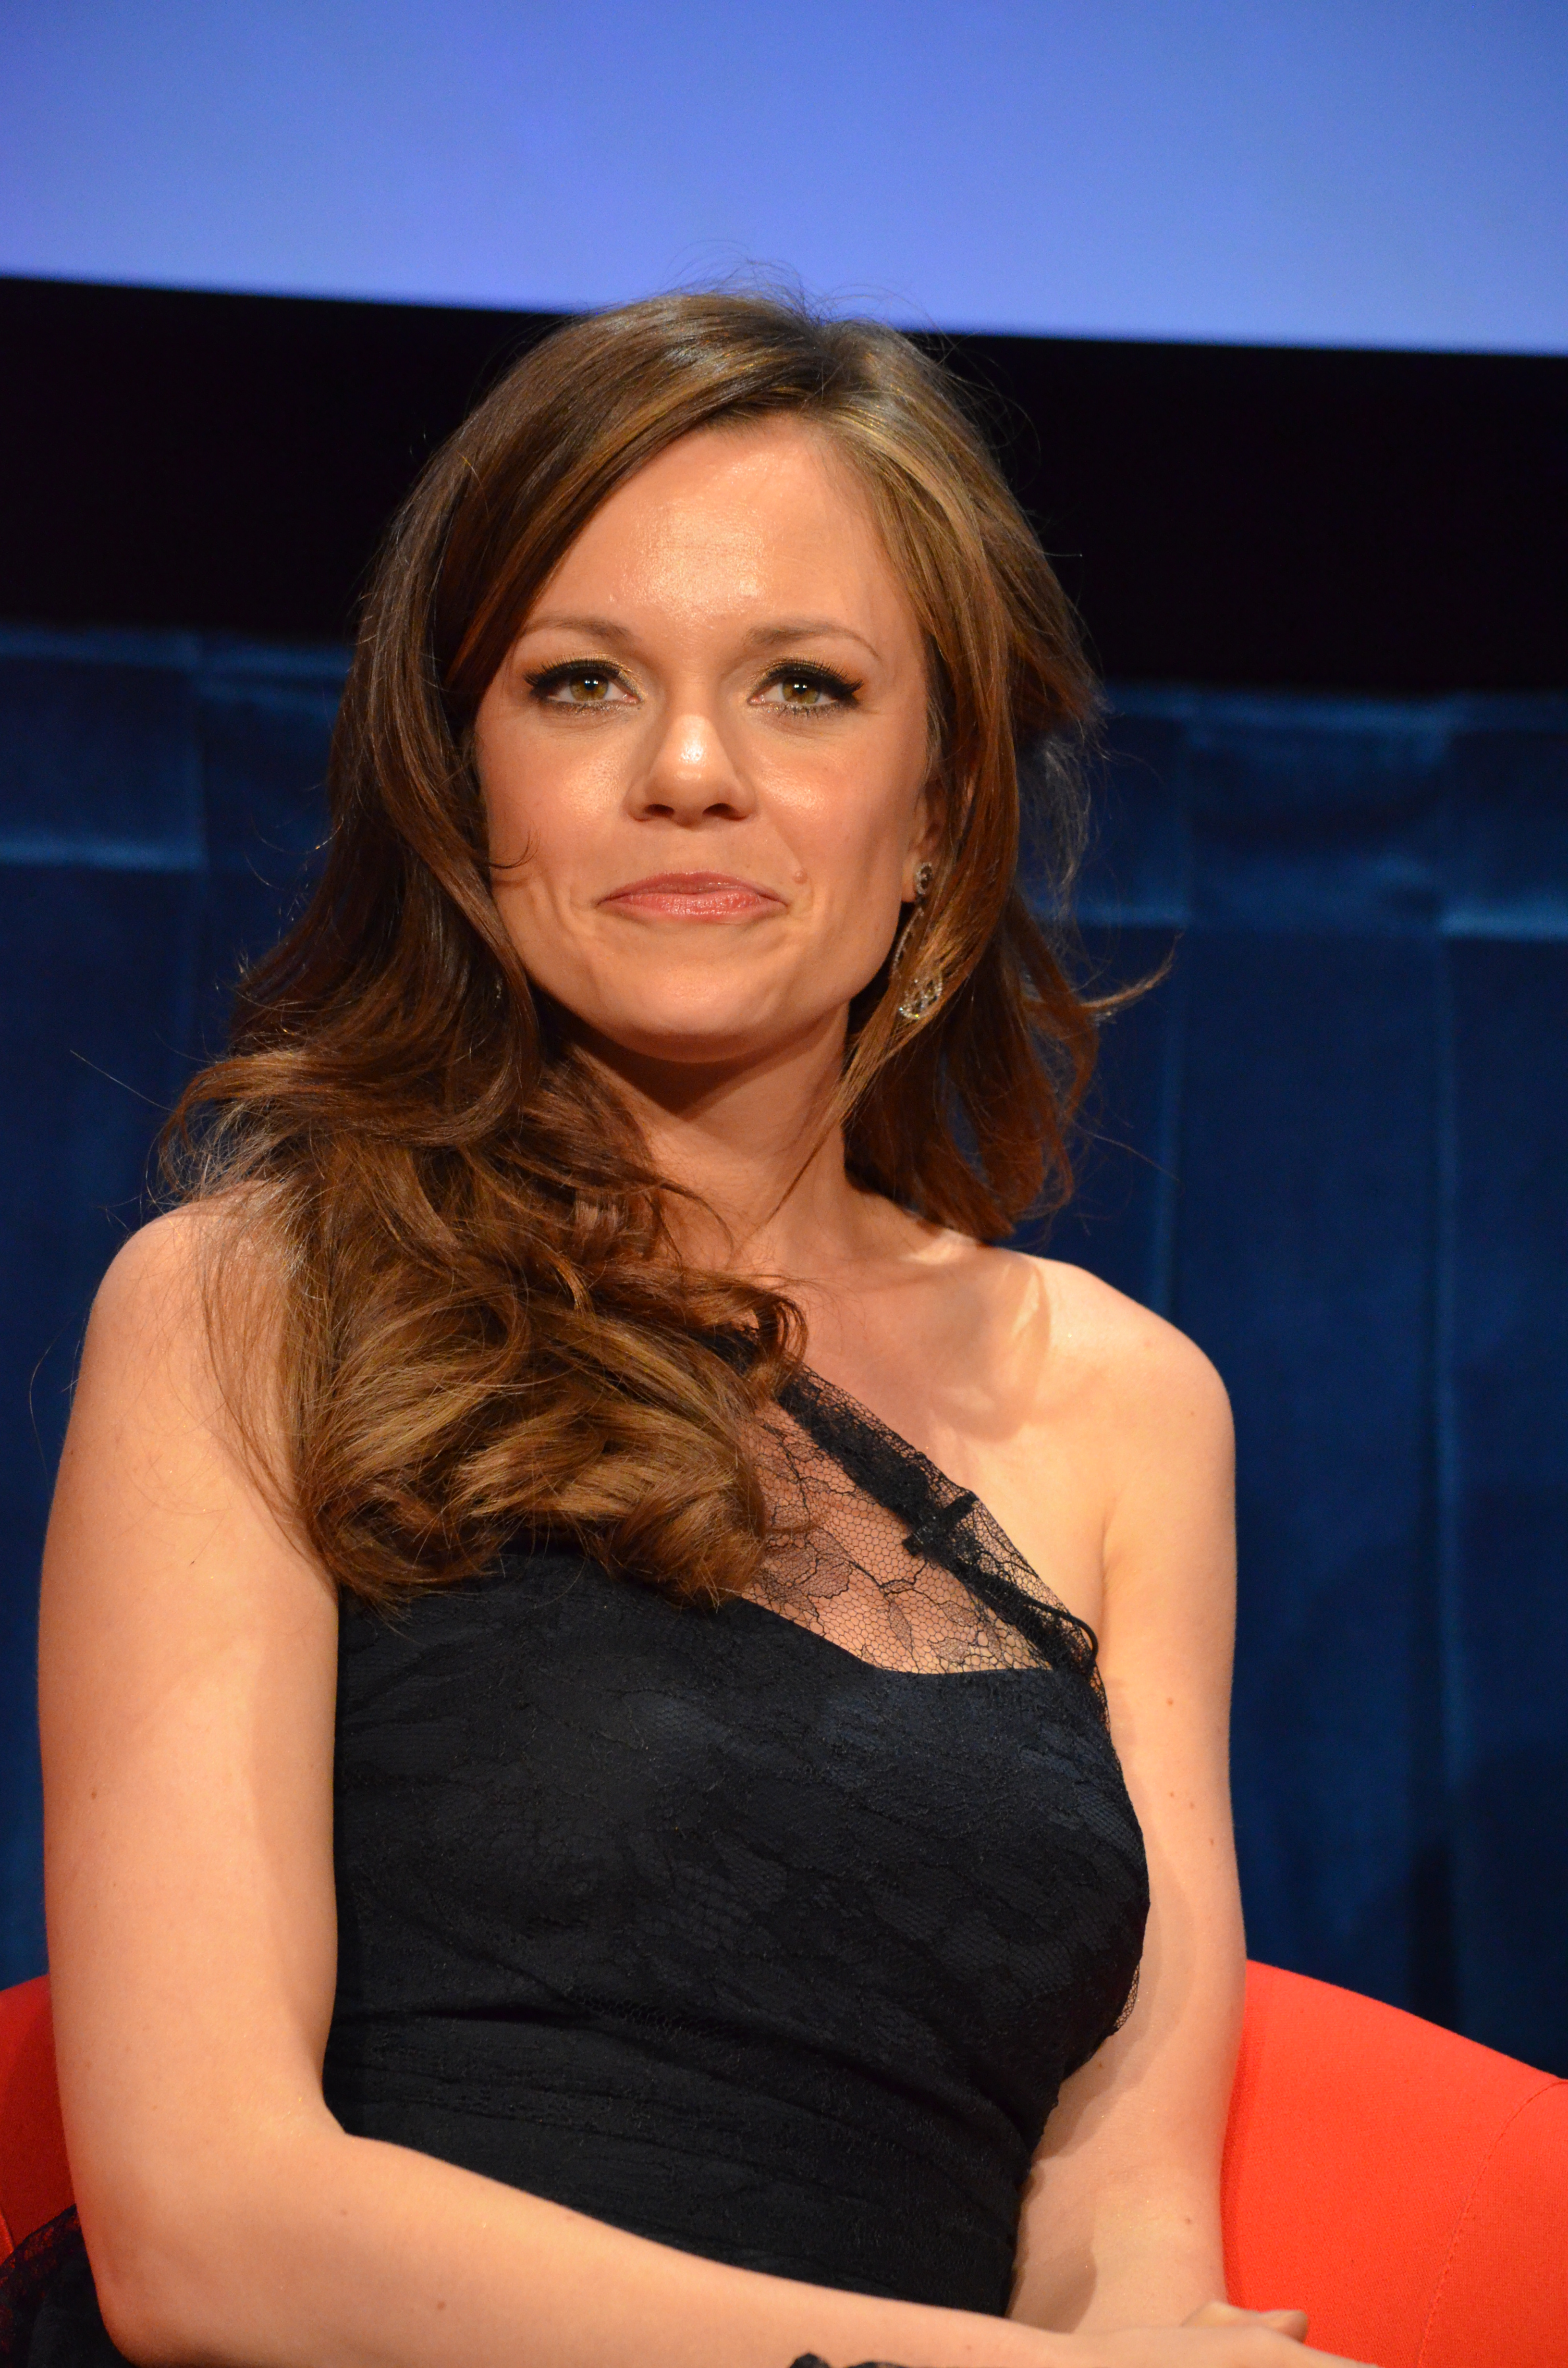 The 36-year old daughter of father (?) and mother(?) Rachel Boston in 2018 photo. Rachel Boston earned a  million dollar salary - leaving the net worth at 4.3 million in 2018